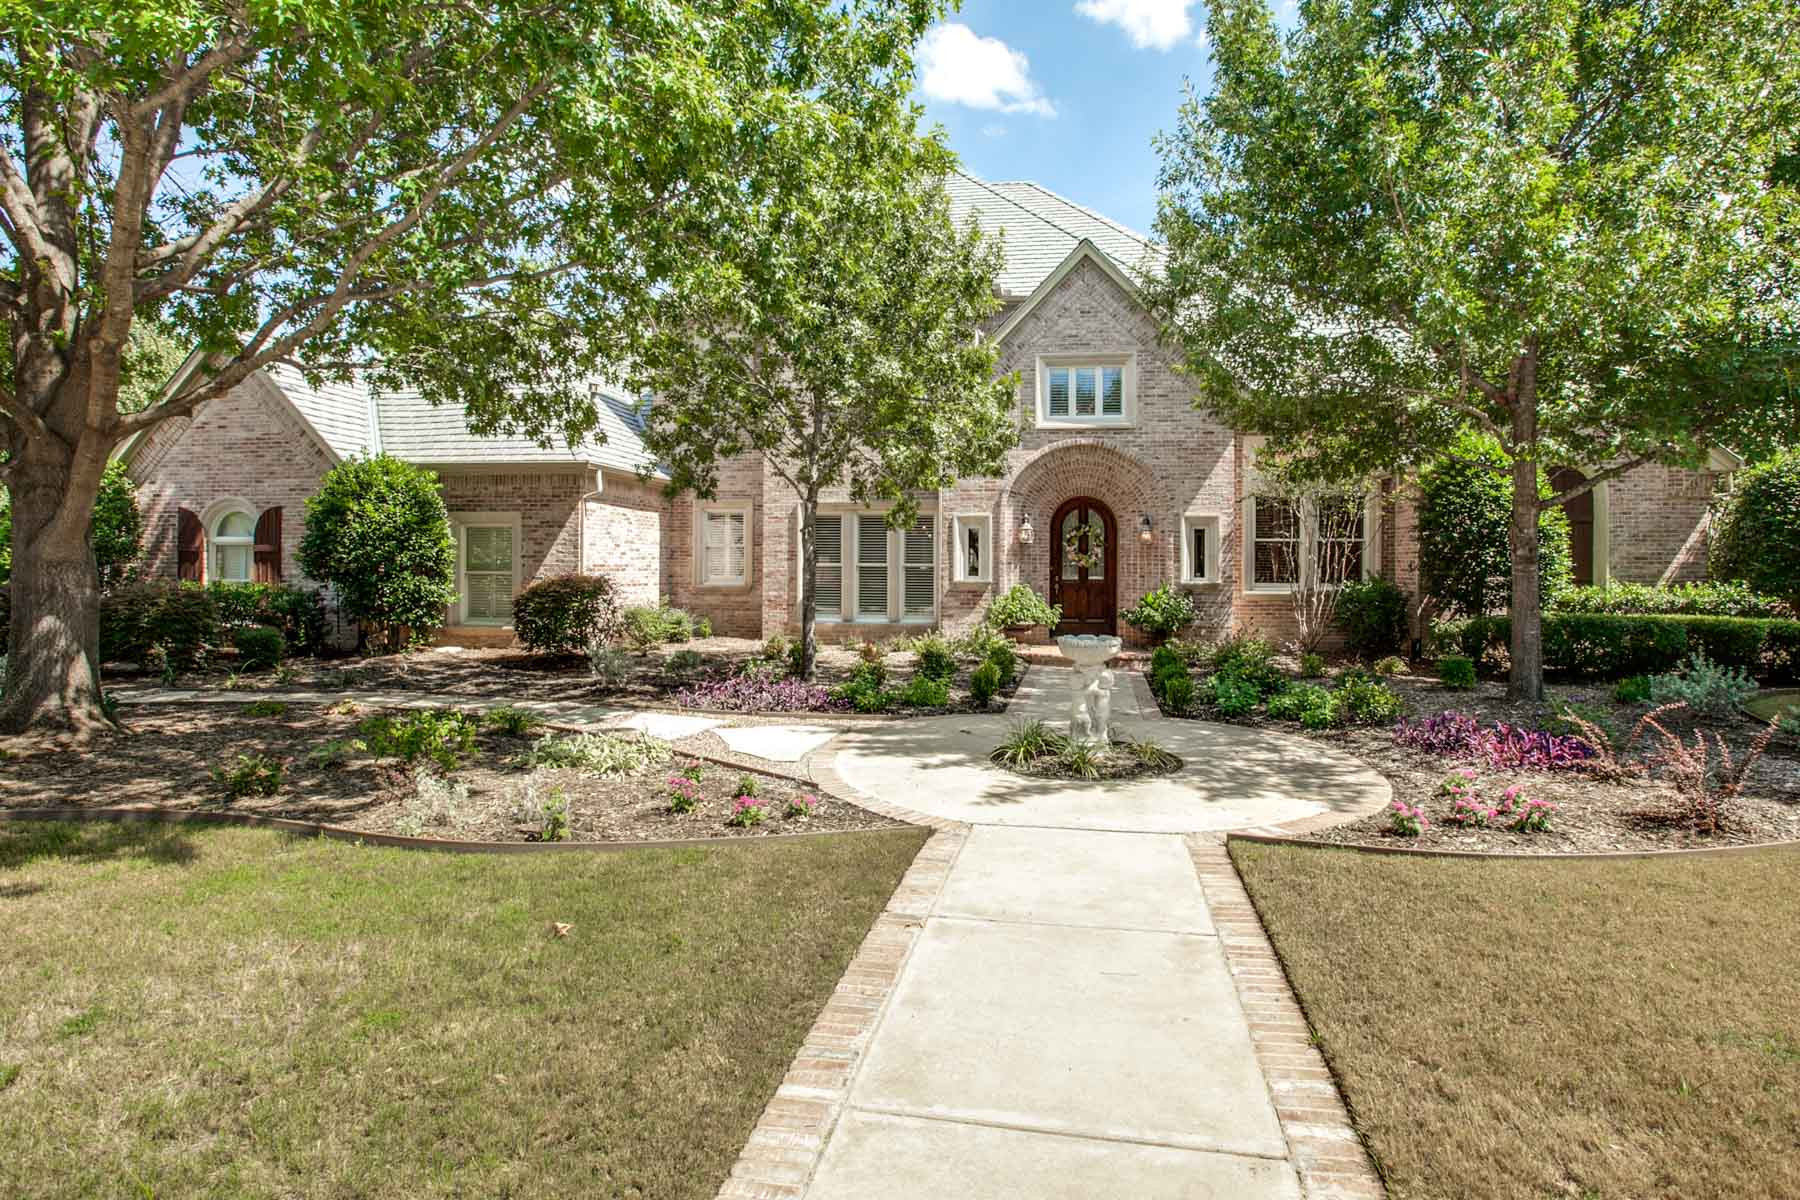 一戸建て のために 売買 アット Meticulously Maintained and Updated Home, Mira Vis 6650 Laurel Valley Dr Fort Worth, テキサス, 76132 アメリカ合衆国